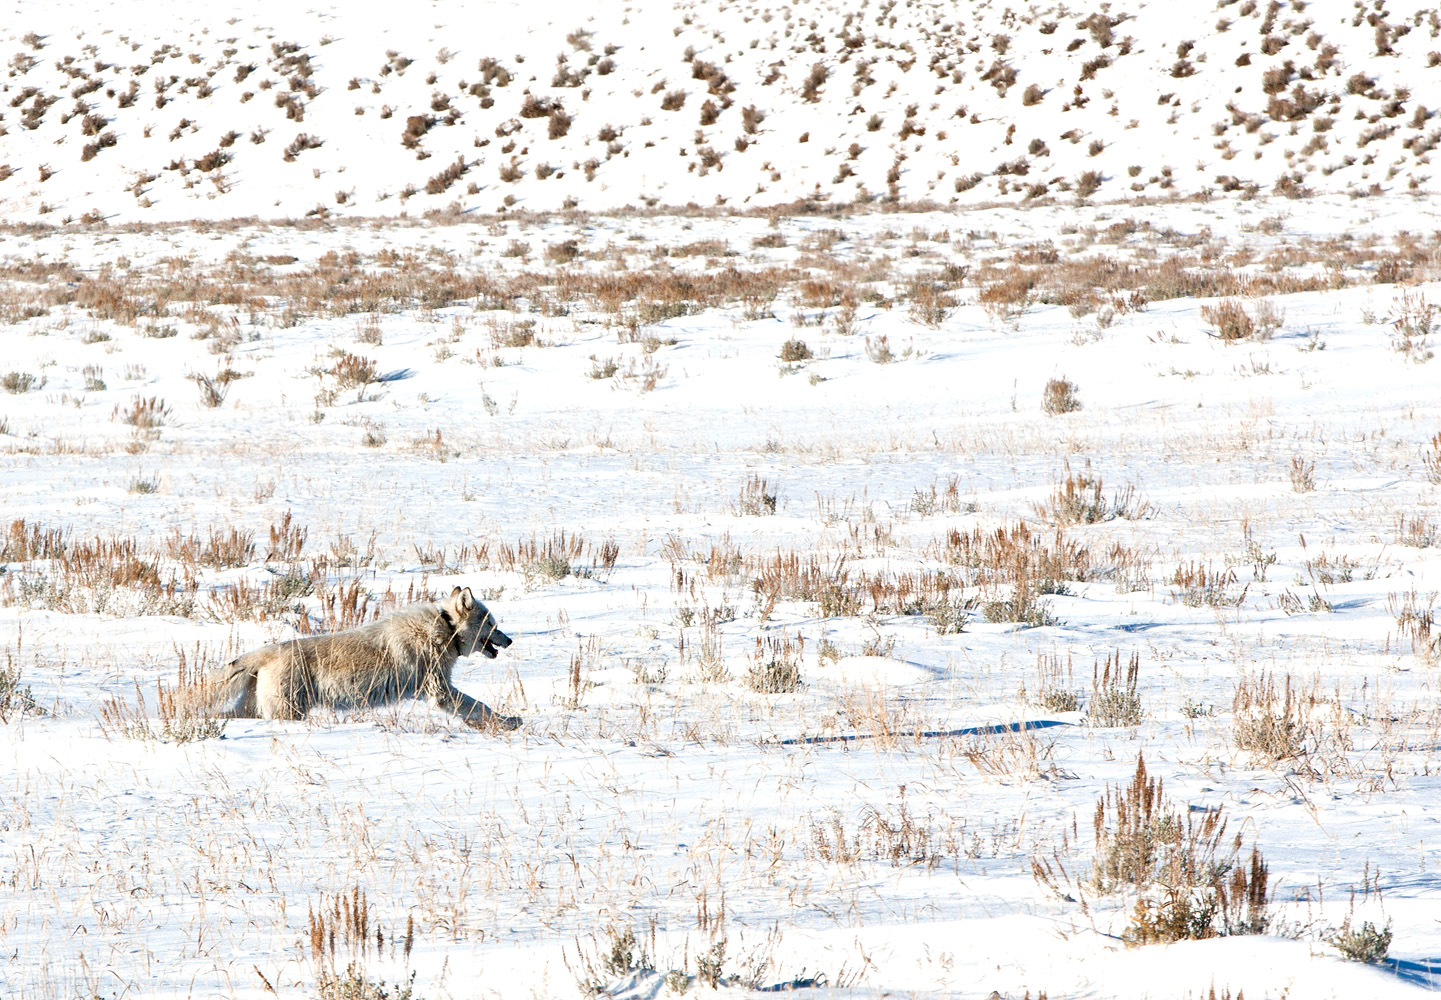 A white wolf sprints across the open meadow and snows toward its pack mates who are headed home.